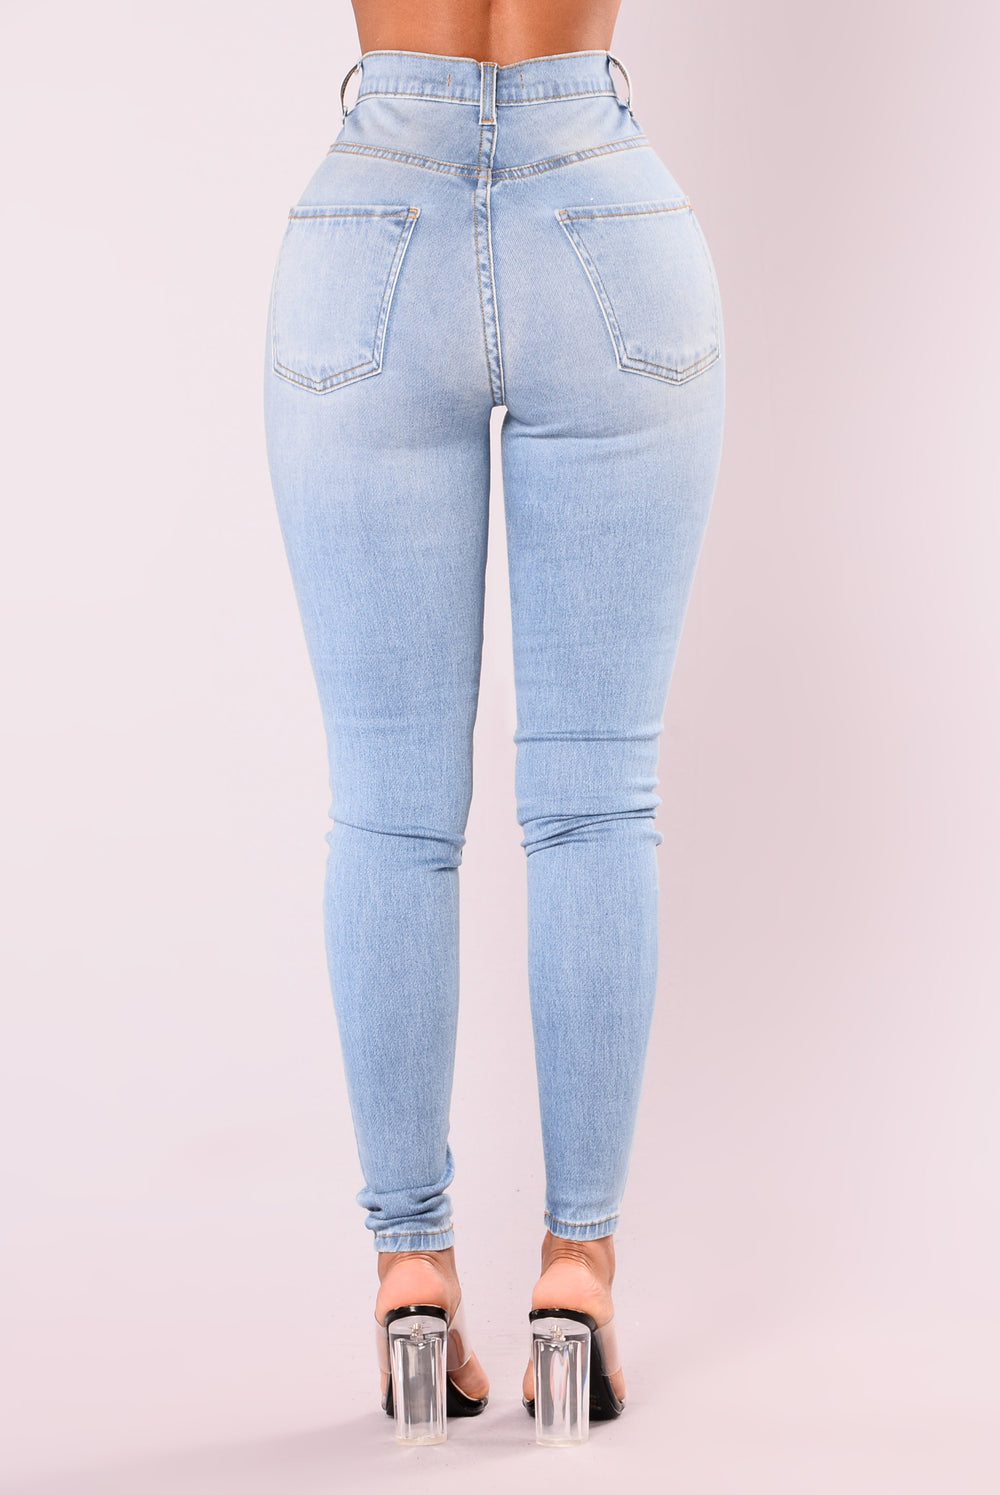 Don't Front Skinny Jeans - Medium Denim